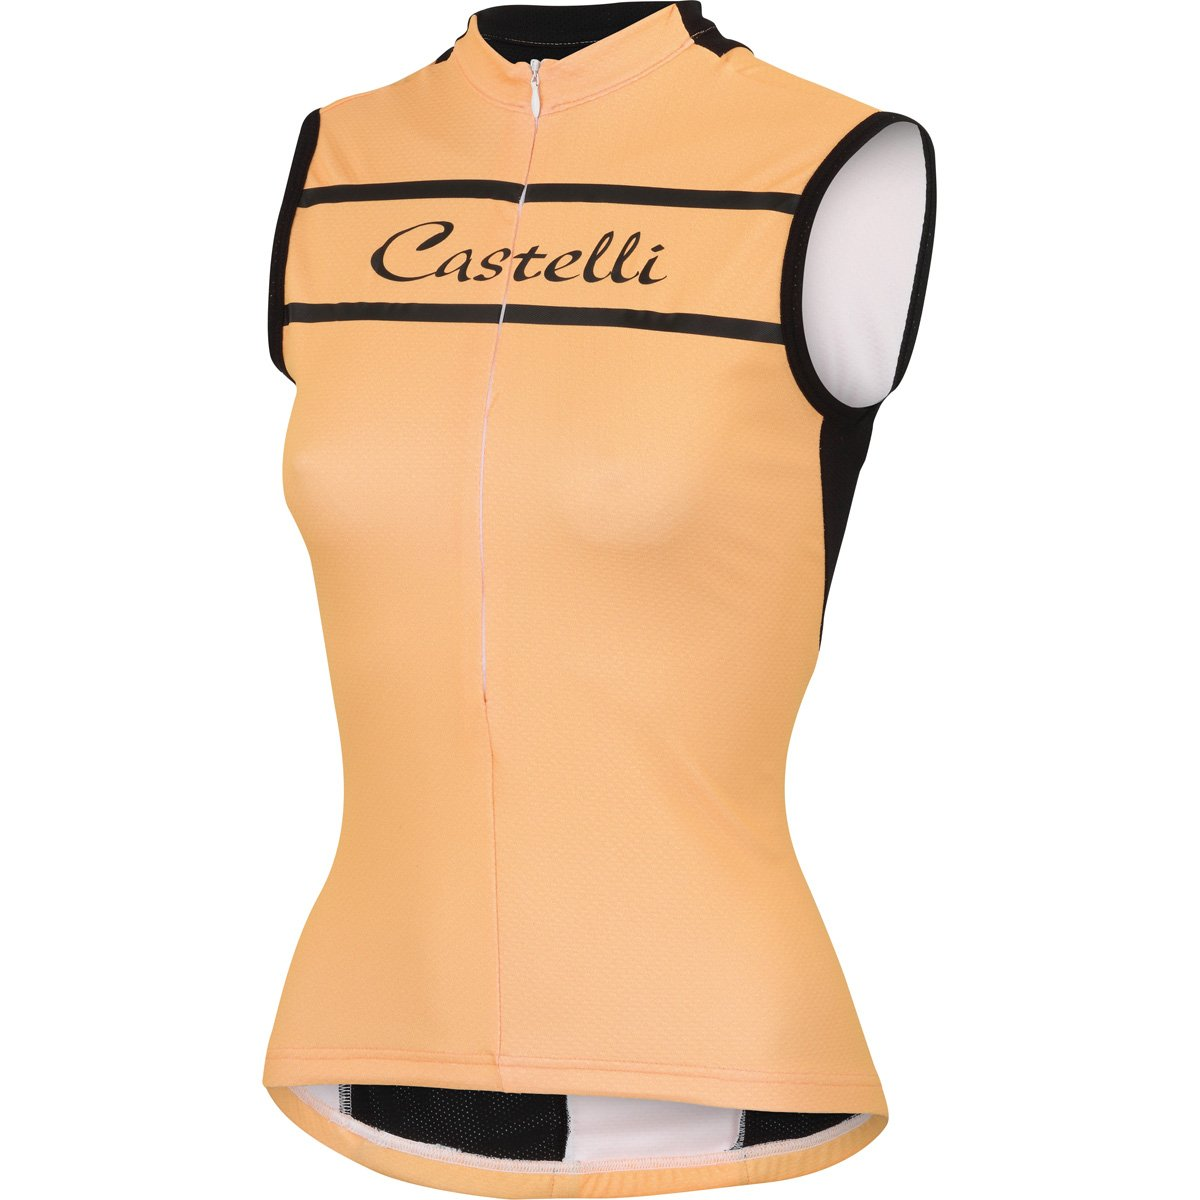 Castelli 2016 Women's Promessa Sleeveless Cycling Jersey - A15053 (Light Orange - S)